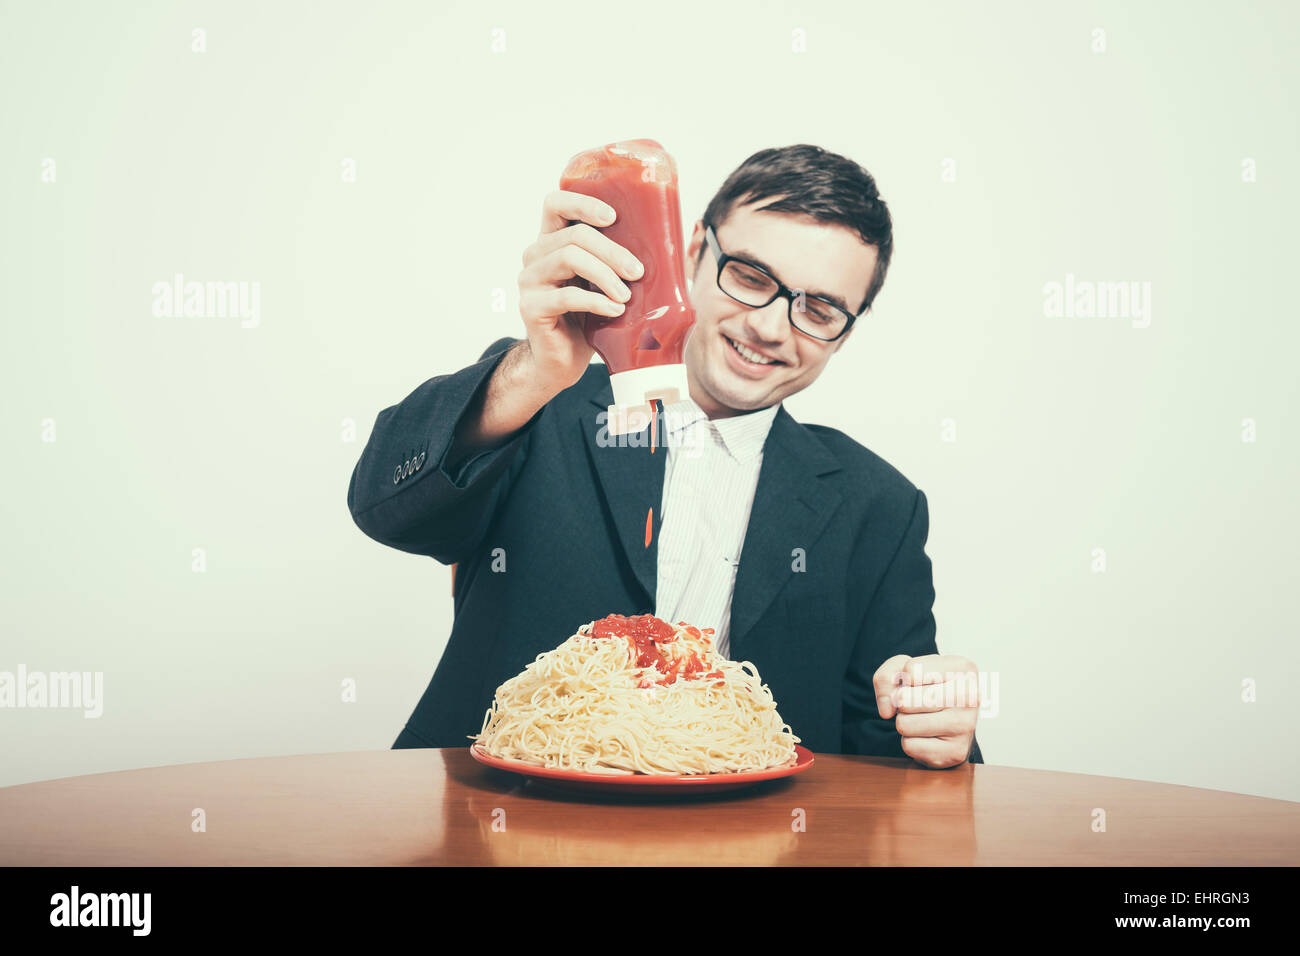 Le consumérisme heureux concept. Happy businessman pouring ketchup sur grand plat de pâtes. Photo Stock